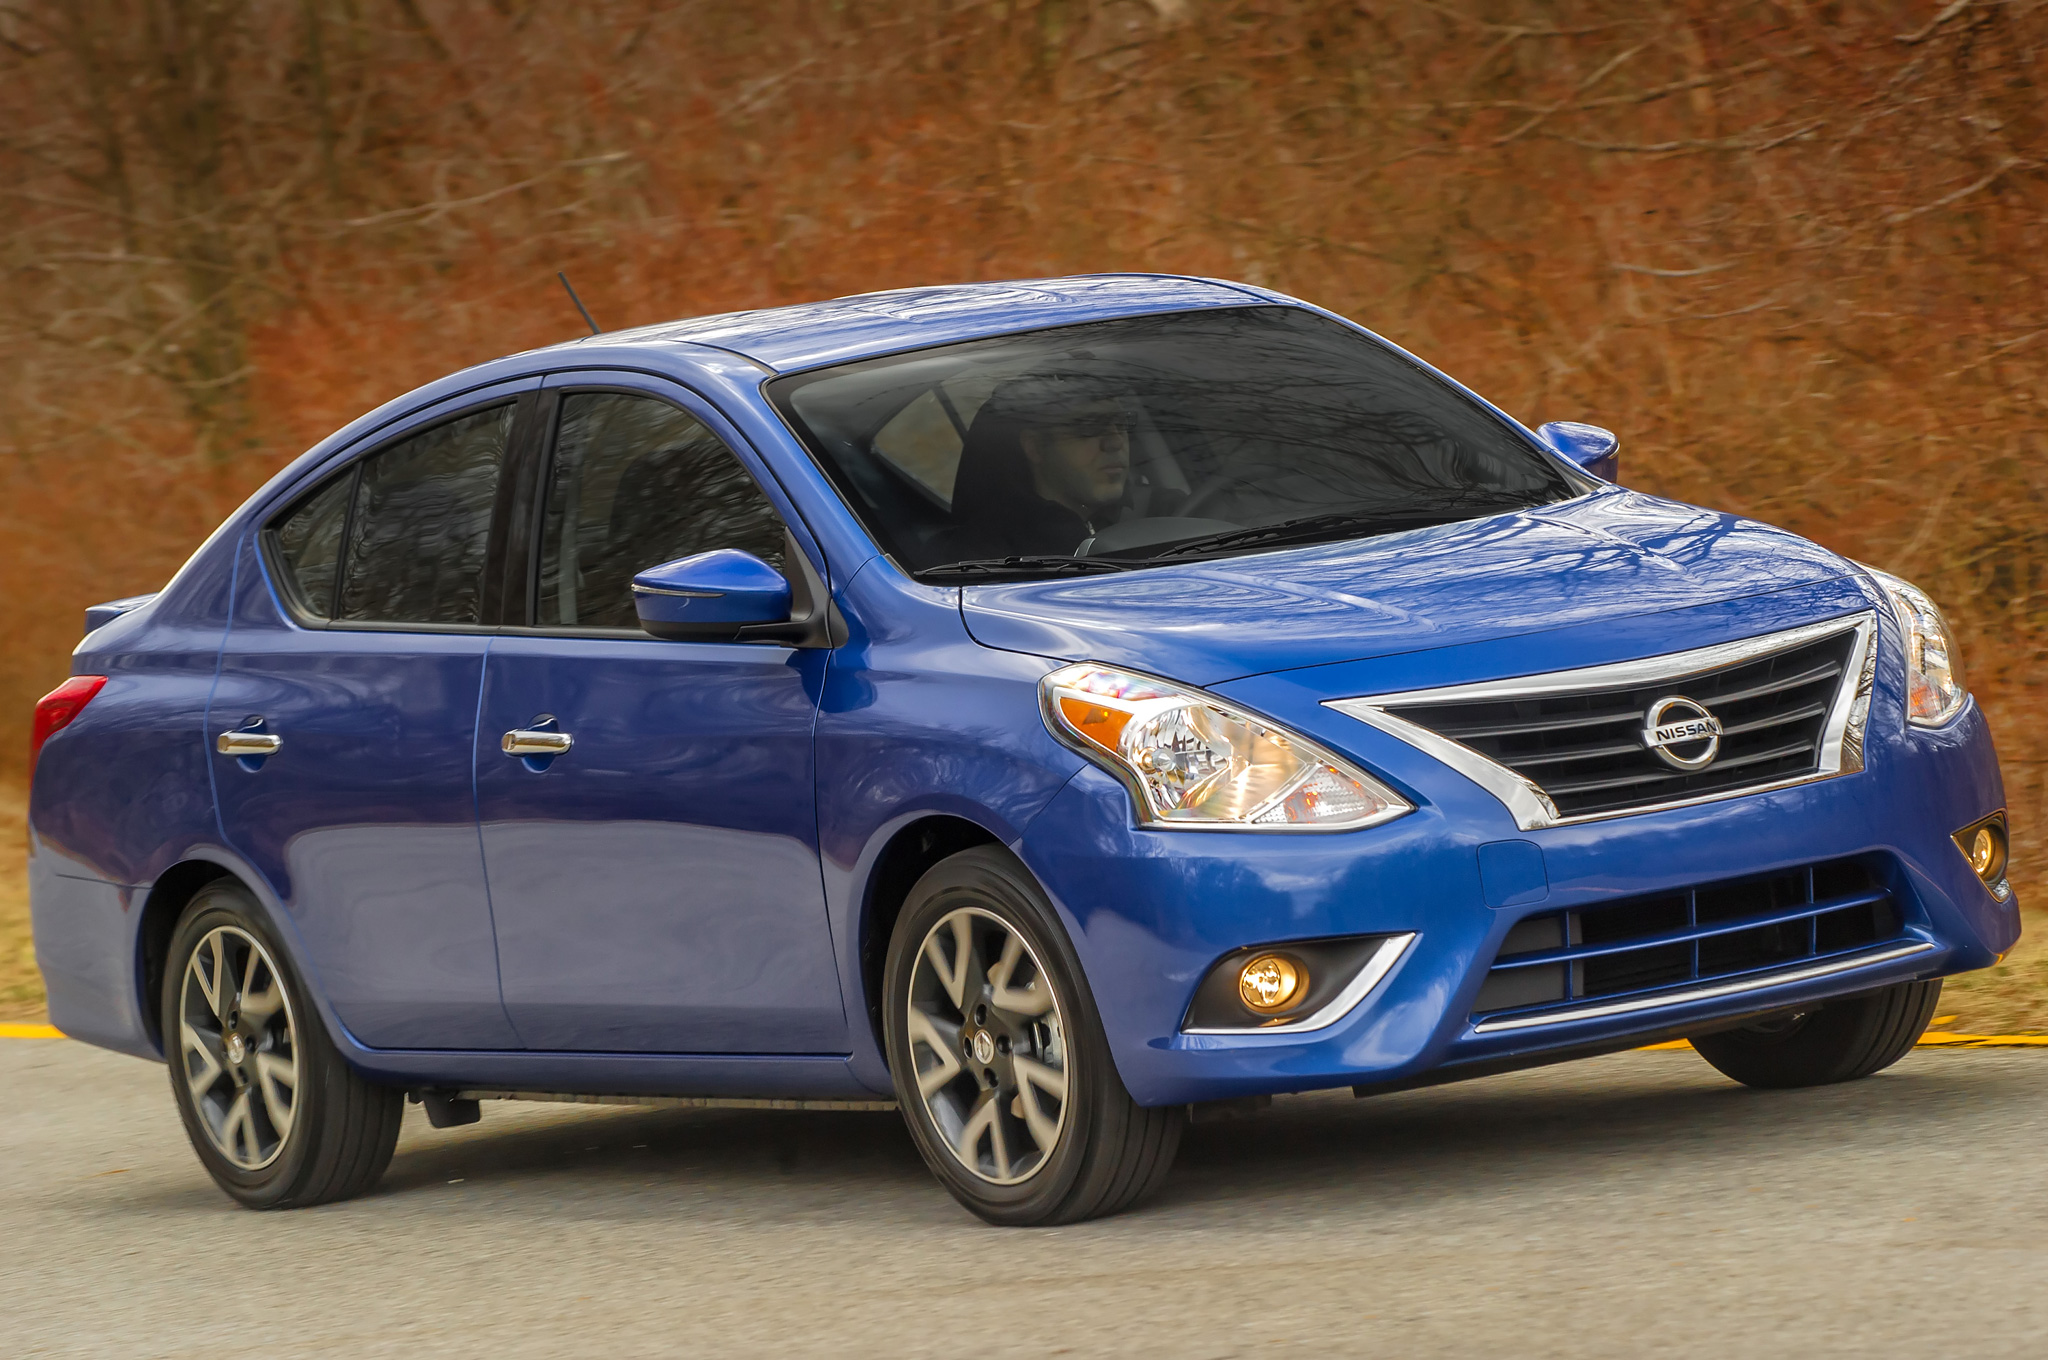 2015 Nissan Versa Sedan Freshens Up for NY, Starts at $12,800